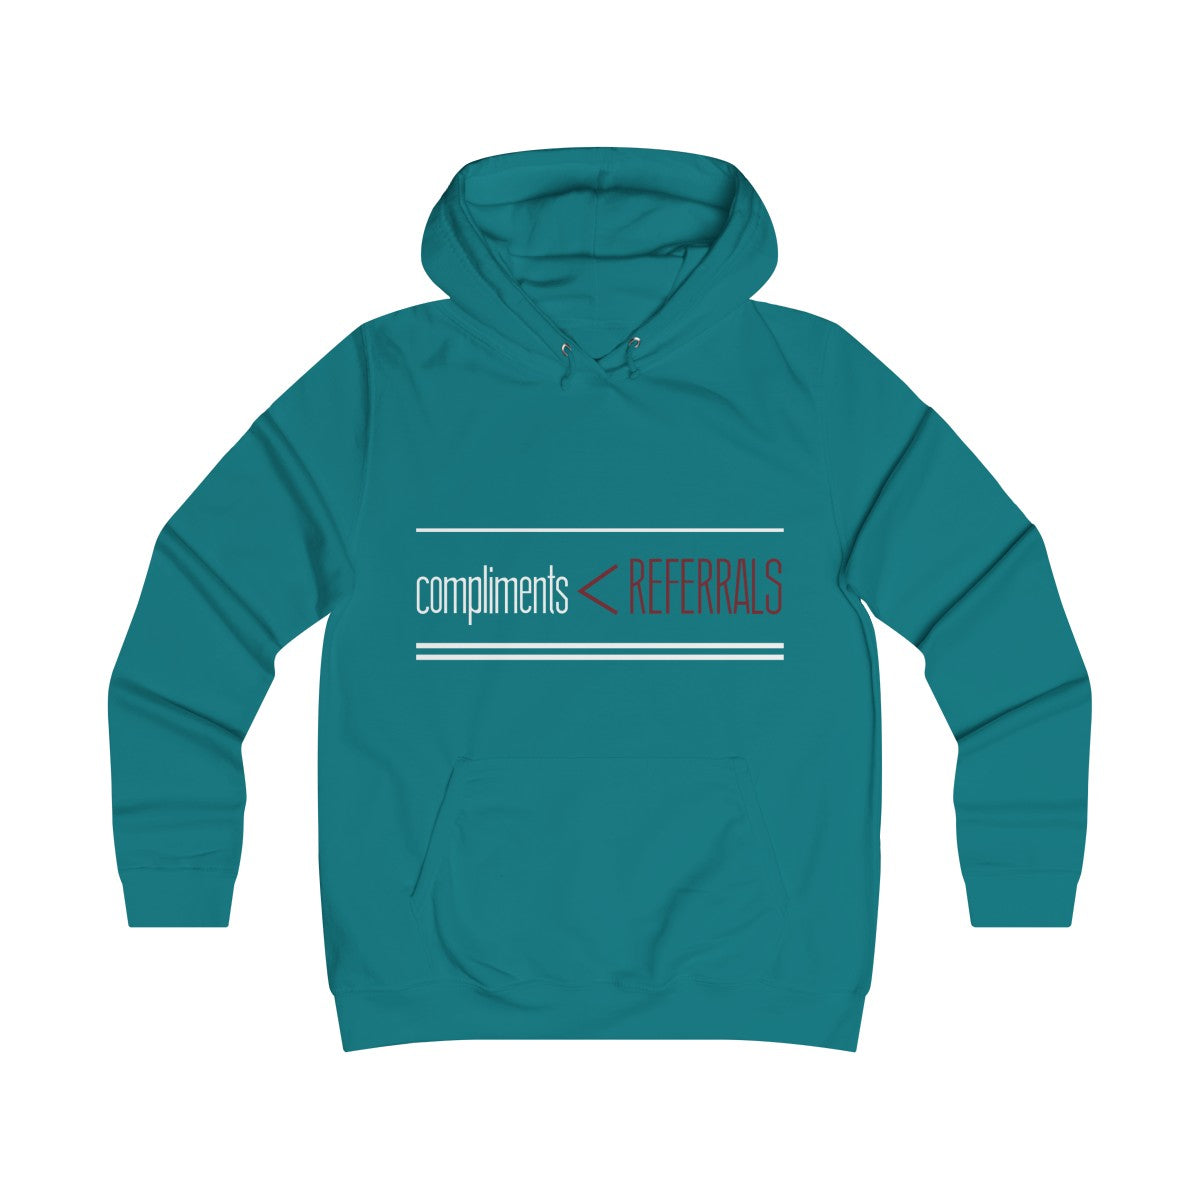 Compliments < Referrals Women's Hoodie